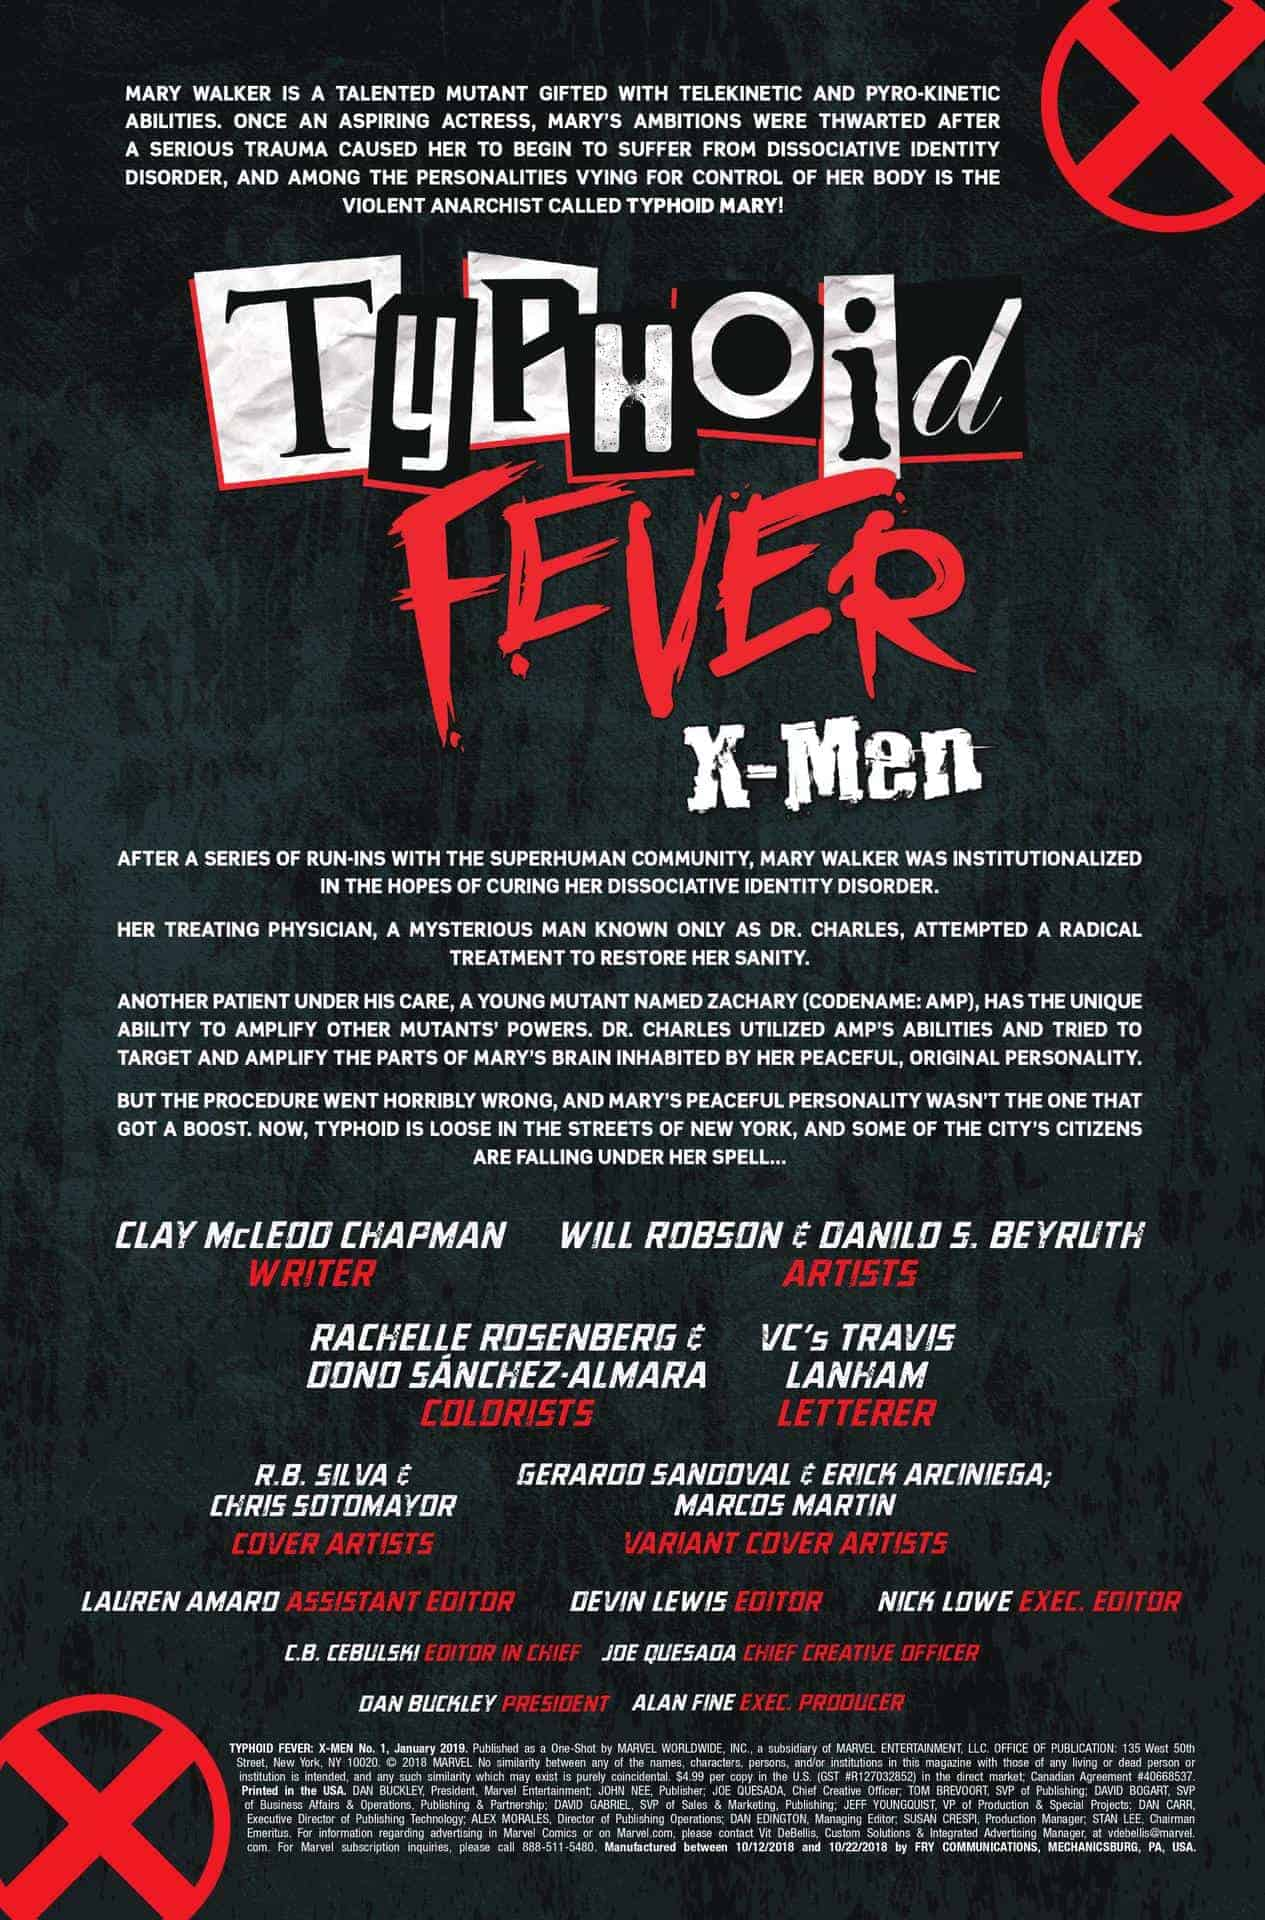 typhoid fever x-men